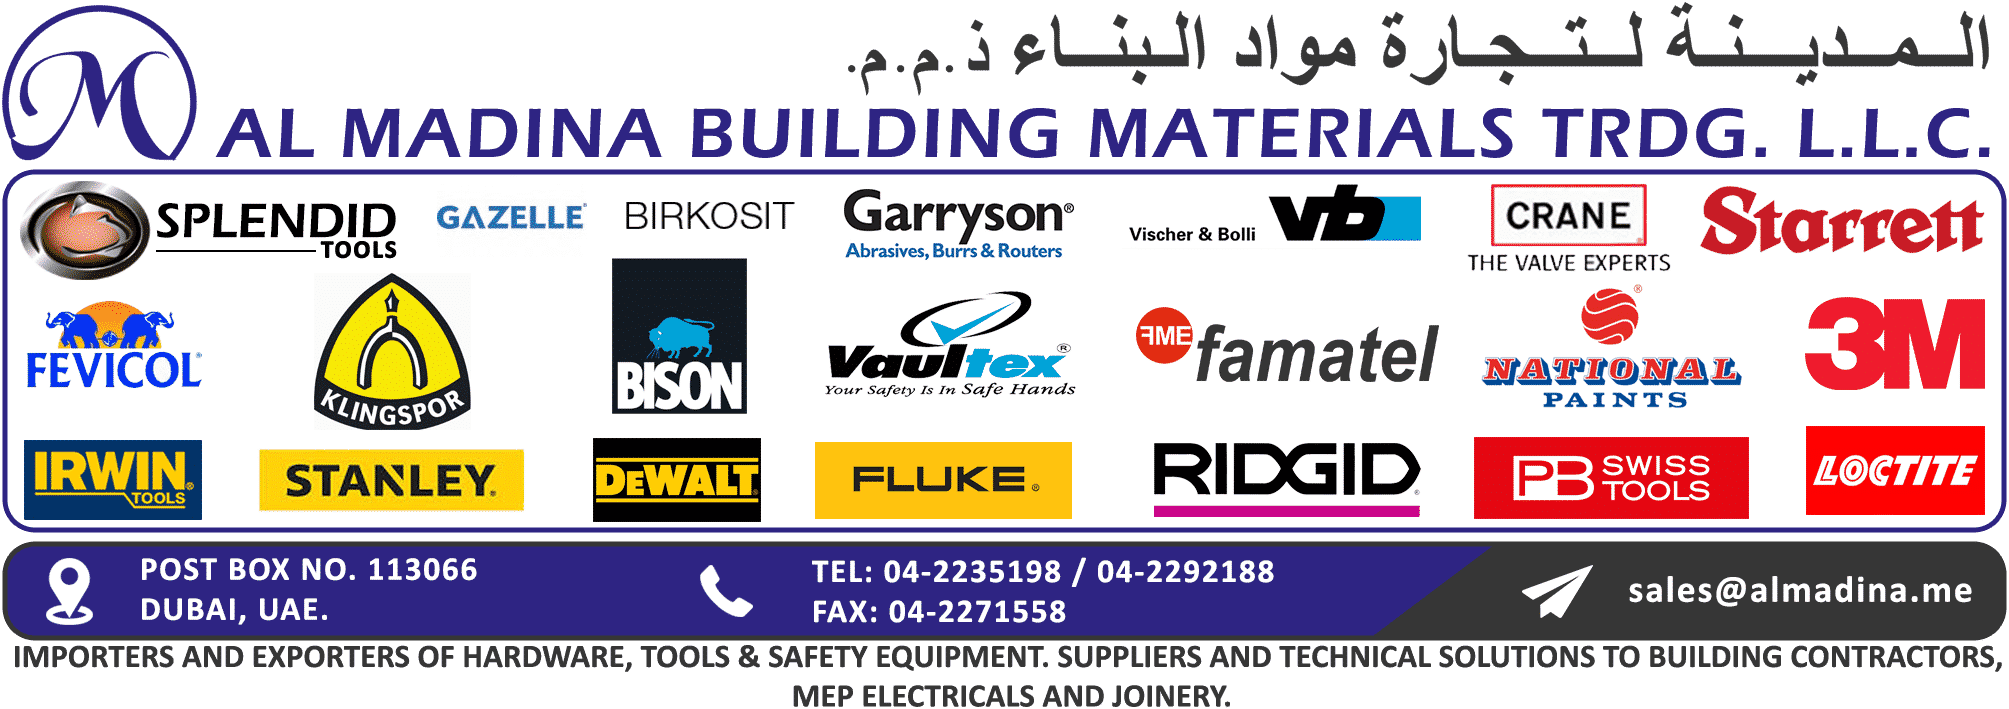 Al Madina Building Materials Trading LLC - WIDA Specified By